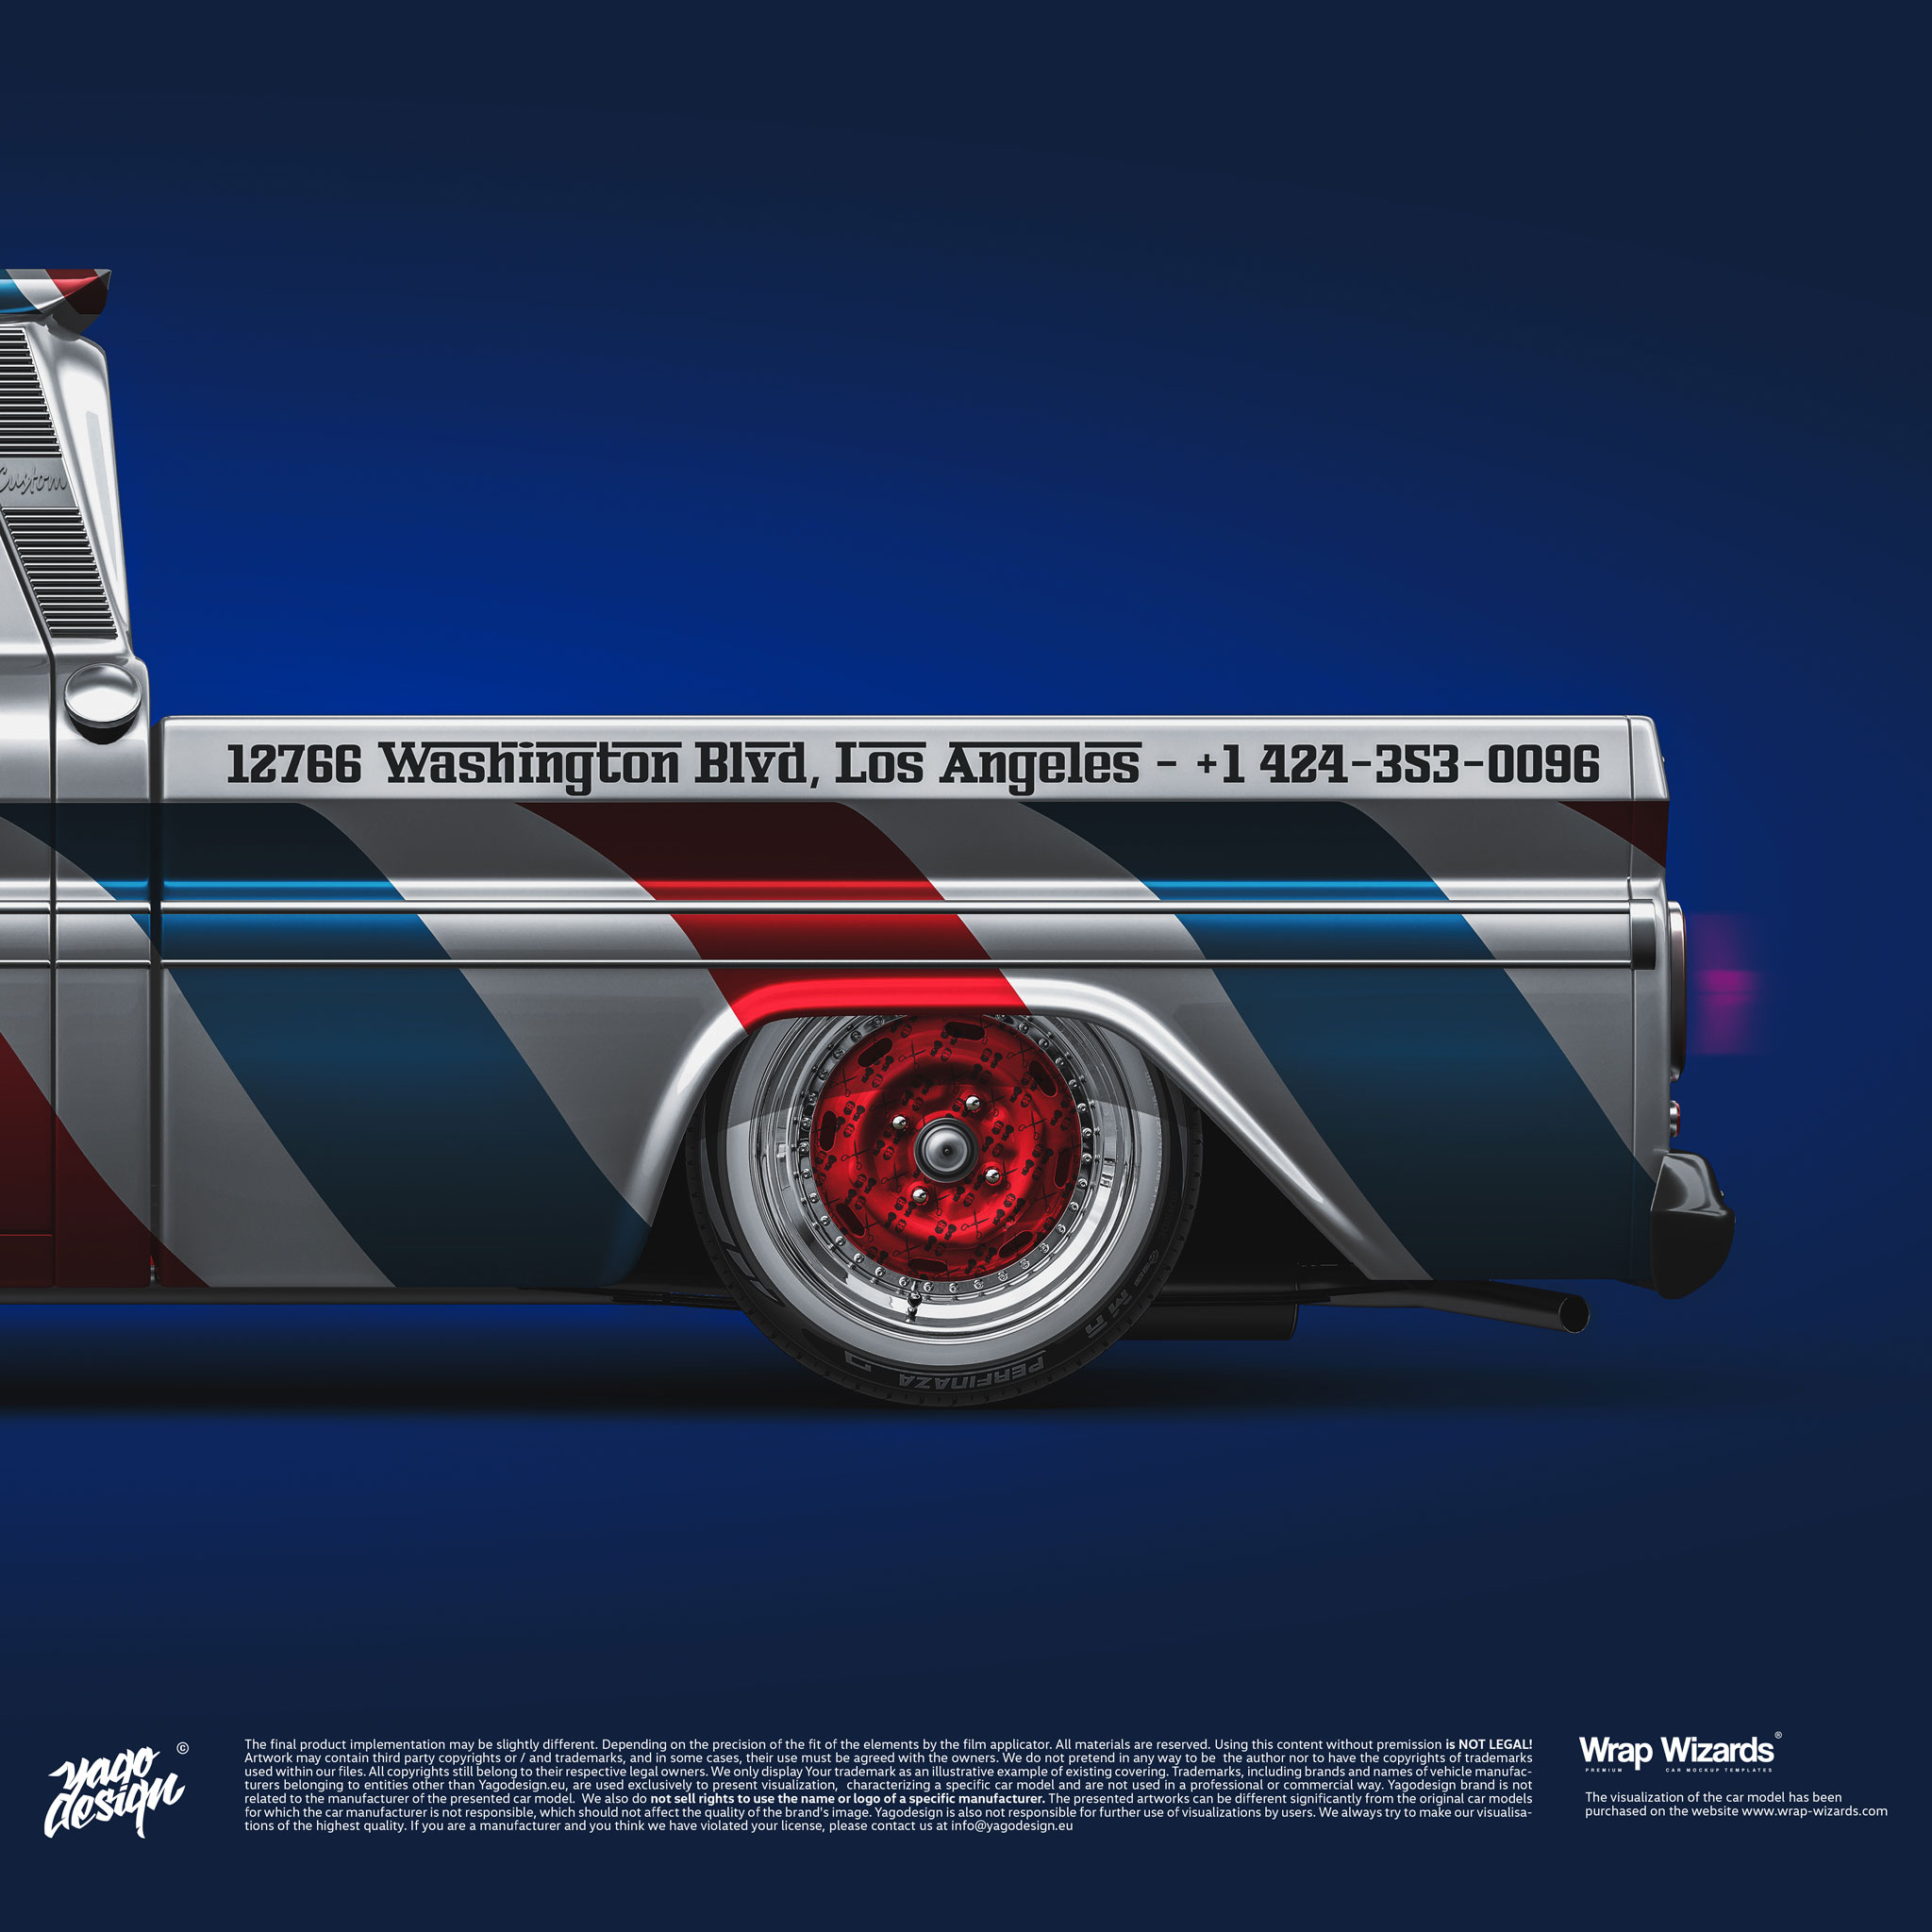 Chevrolet-C-10-by-Yagodesign-2020-Car-Wrapping-Design-Studio-2